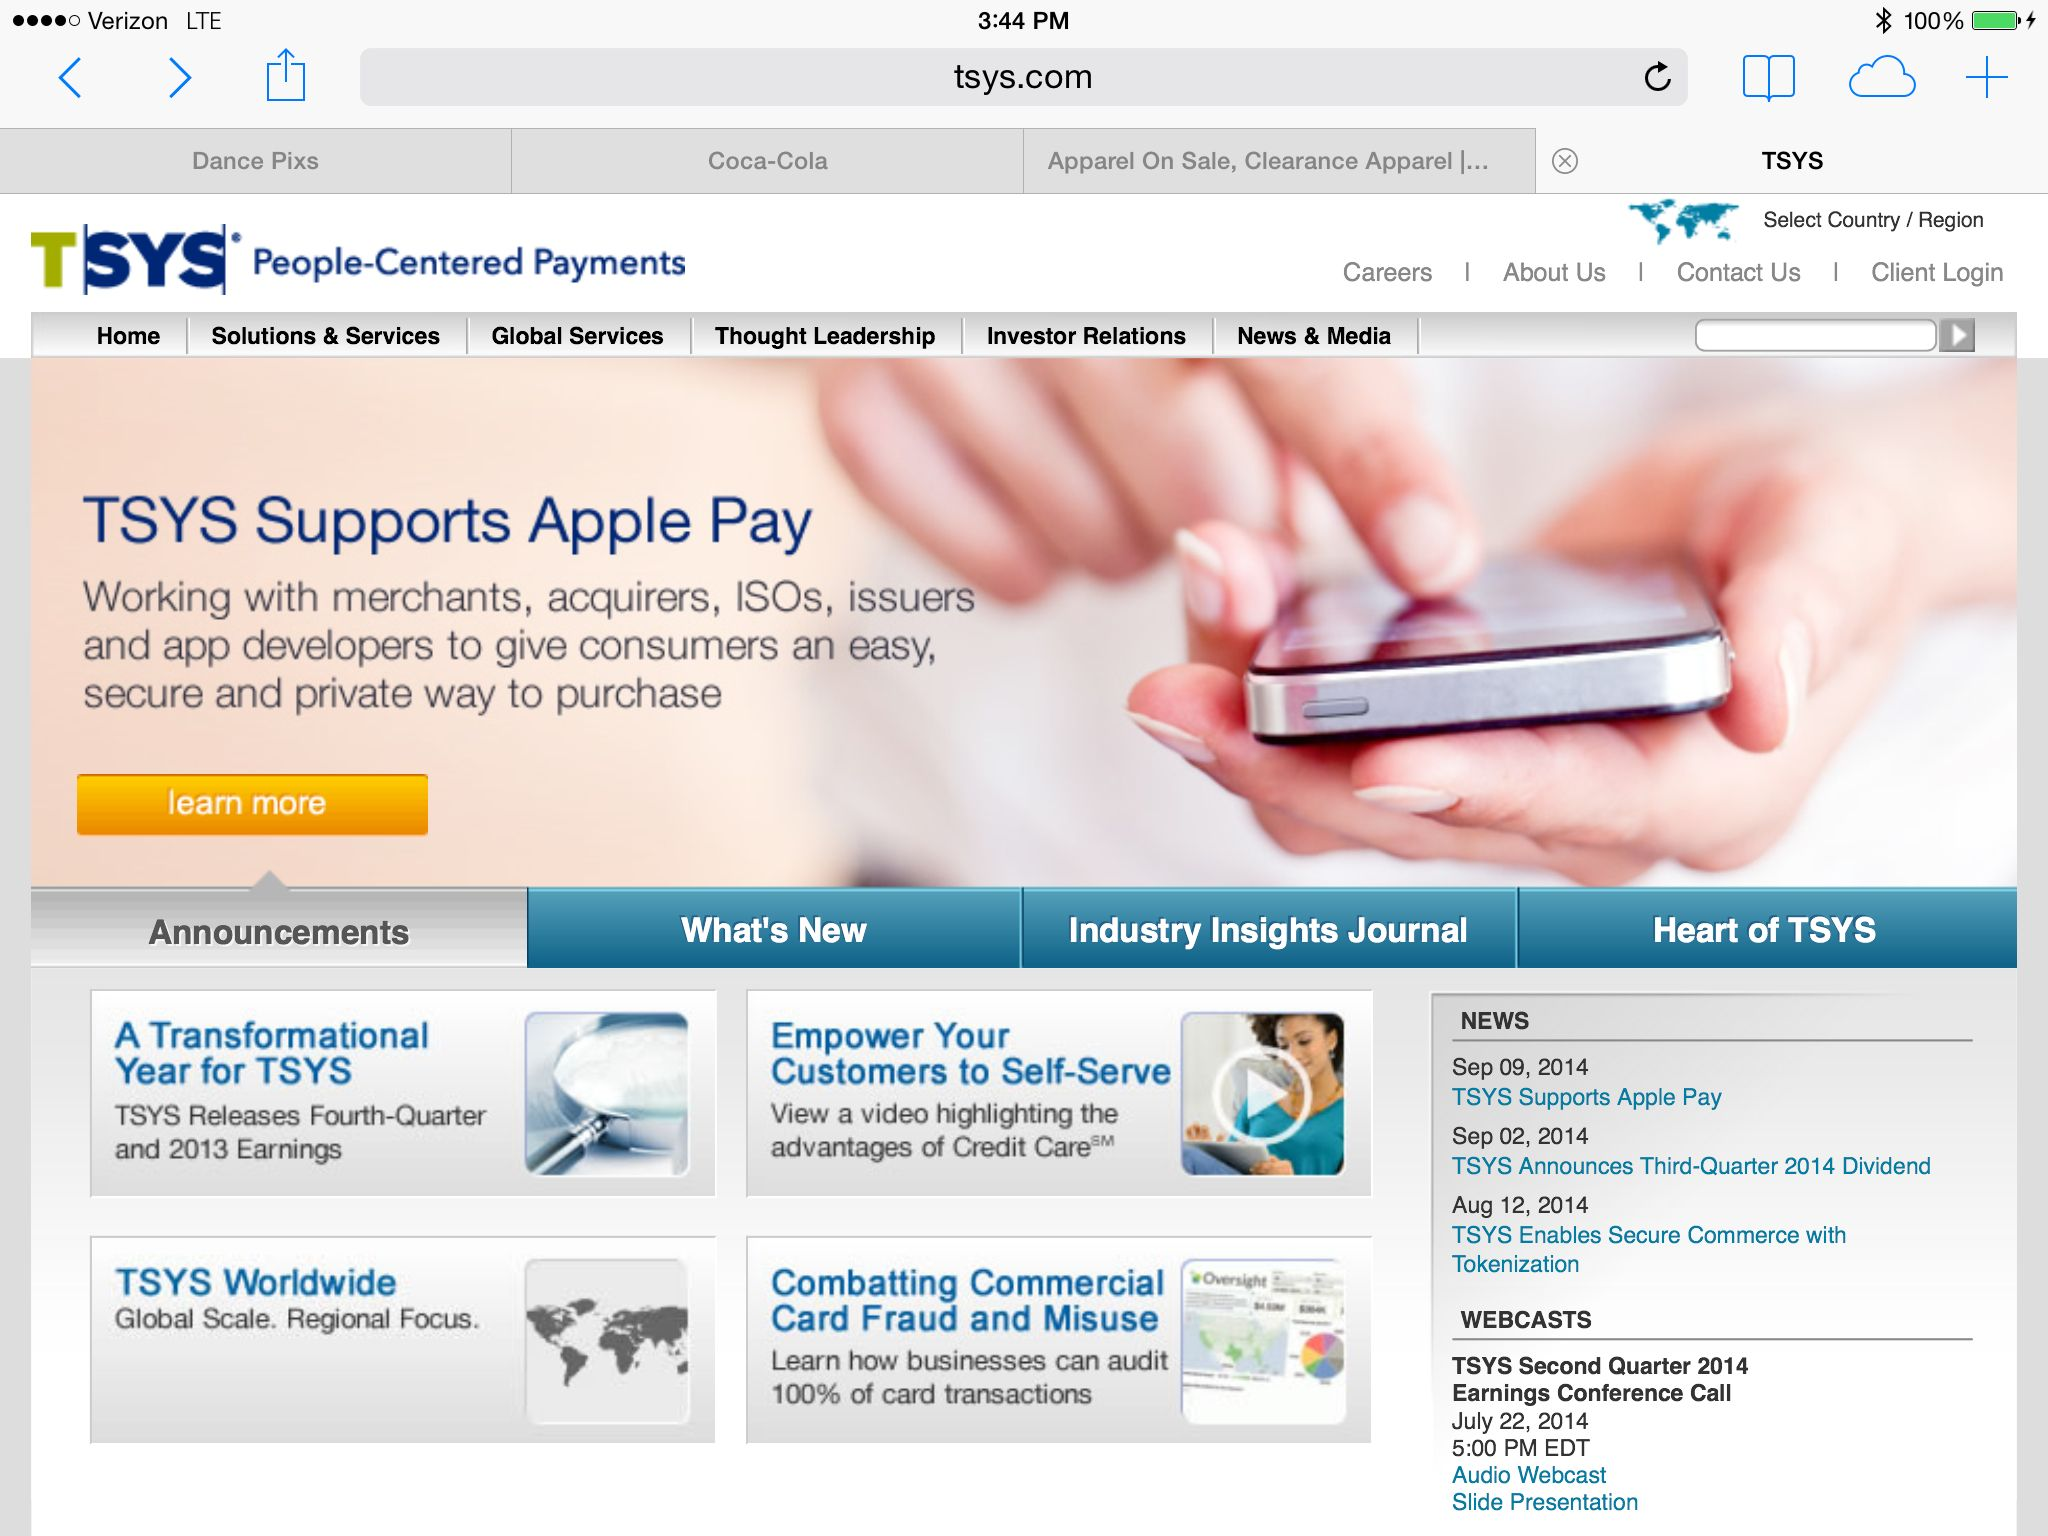 Tsys Supports Apple Pay Http Www Tsys Com News Releases 09092014tsysapplepay Cfm Leadership Articles Investor Relations Apple Pay